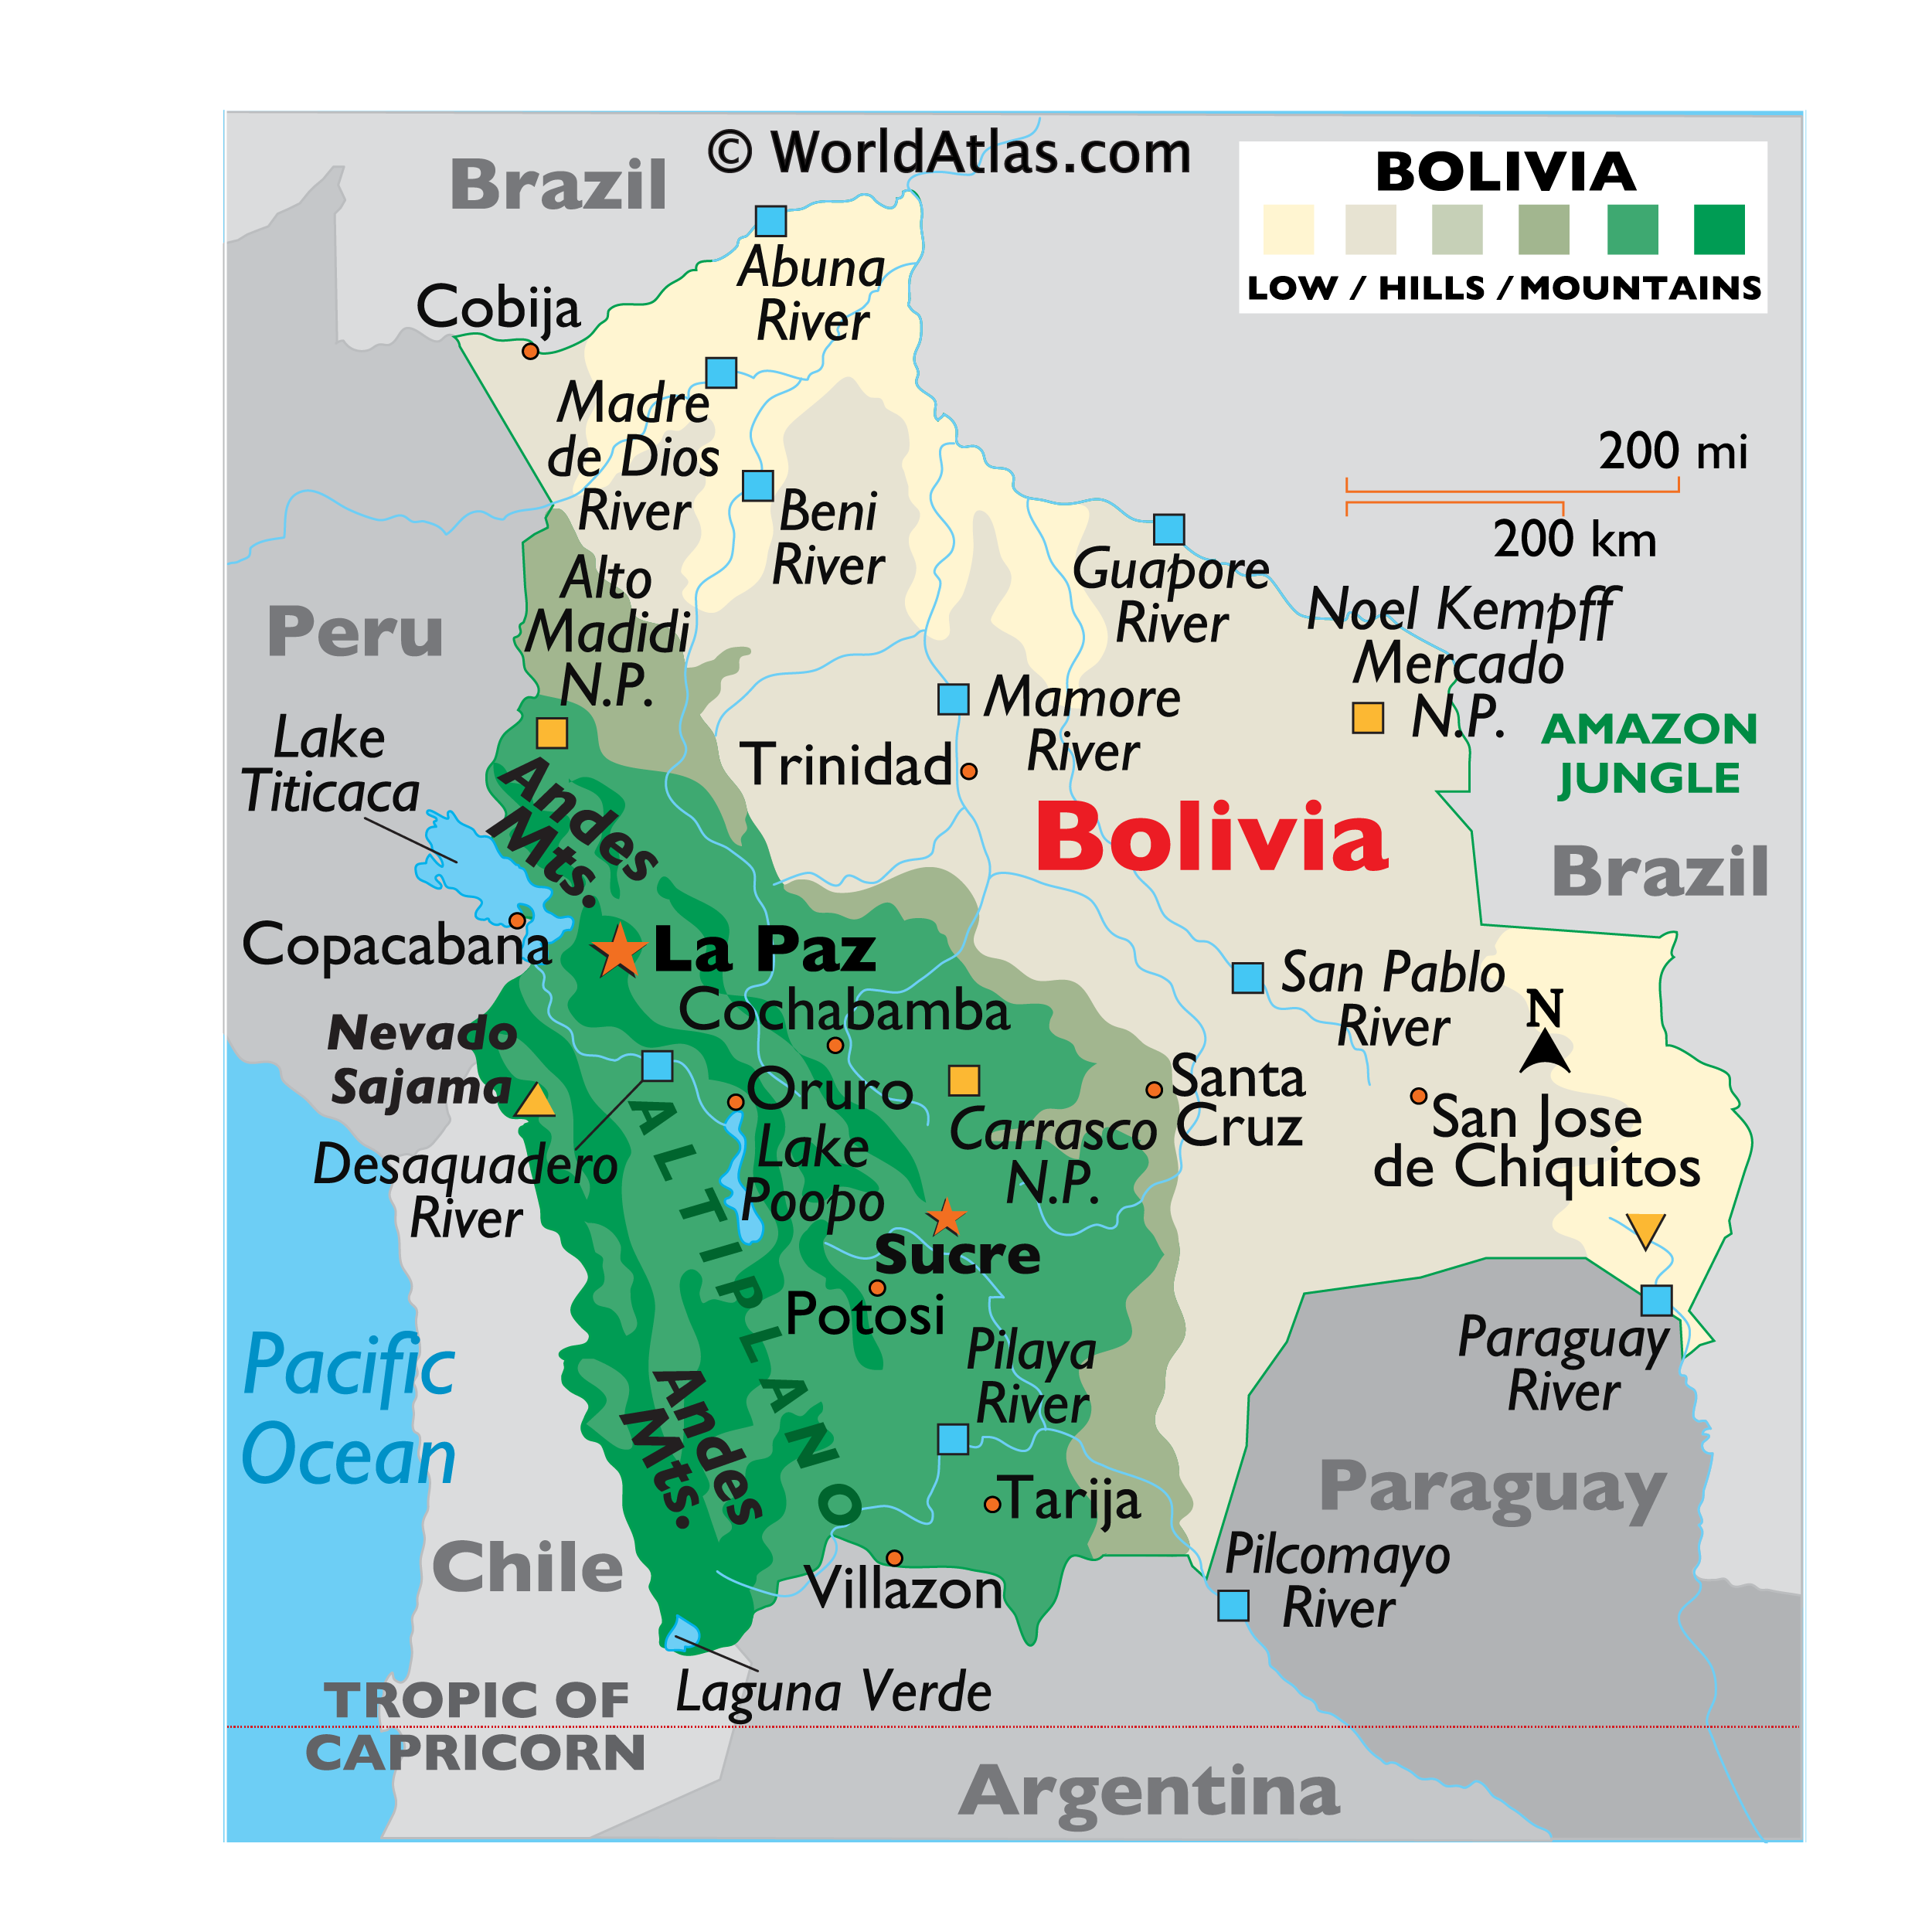 Physical Map of Bolivia showing relief, rivers, mountains ranges, major lakes, important cities, bordering countries, and more.